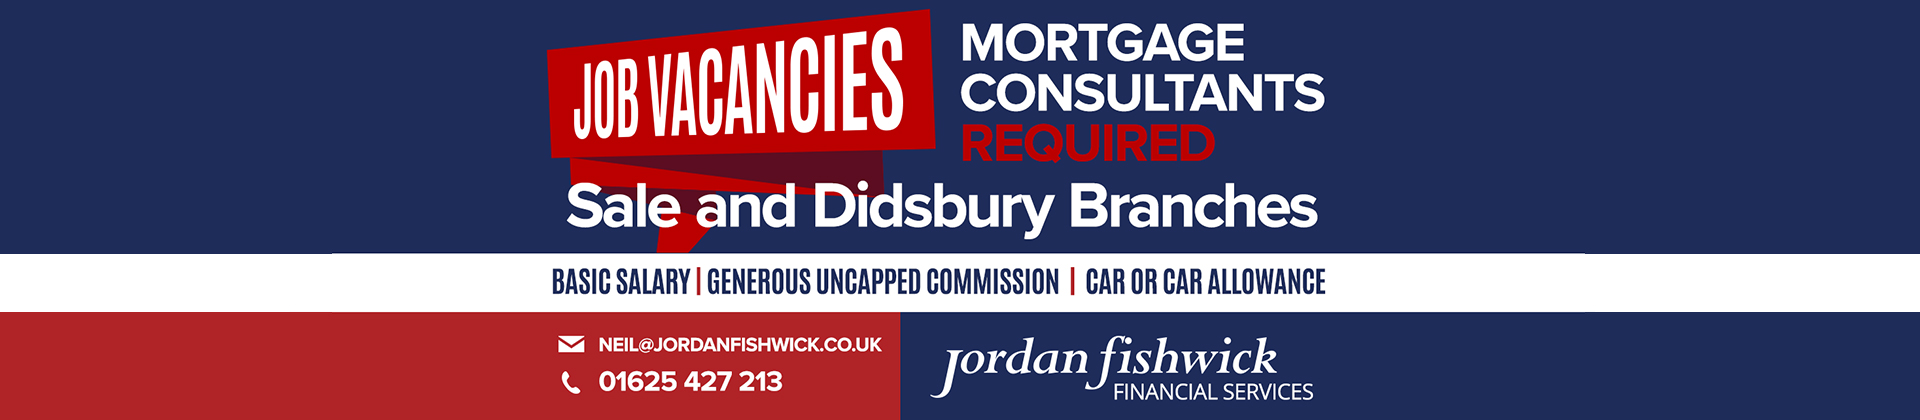 sale_didsbury_vacancy